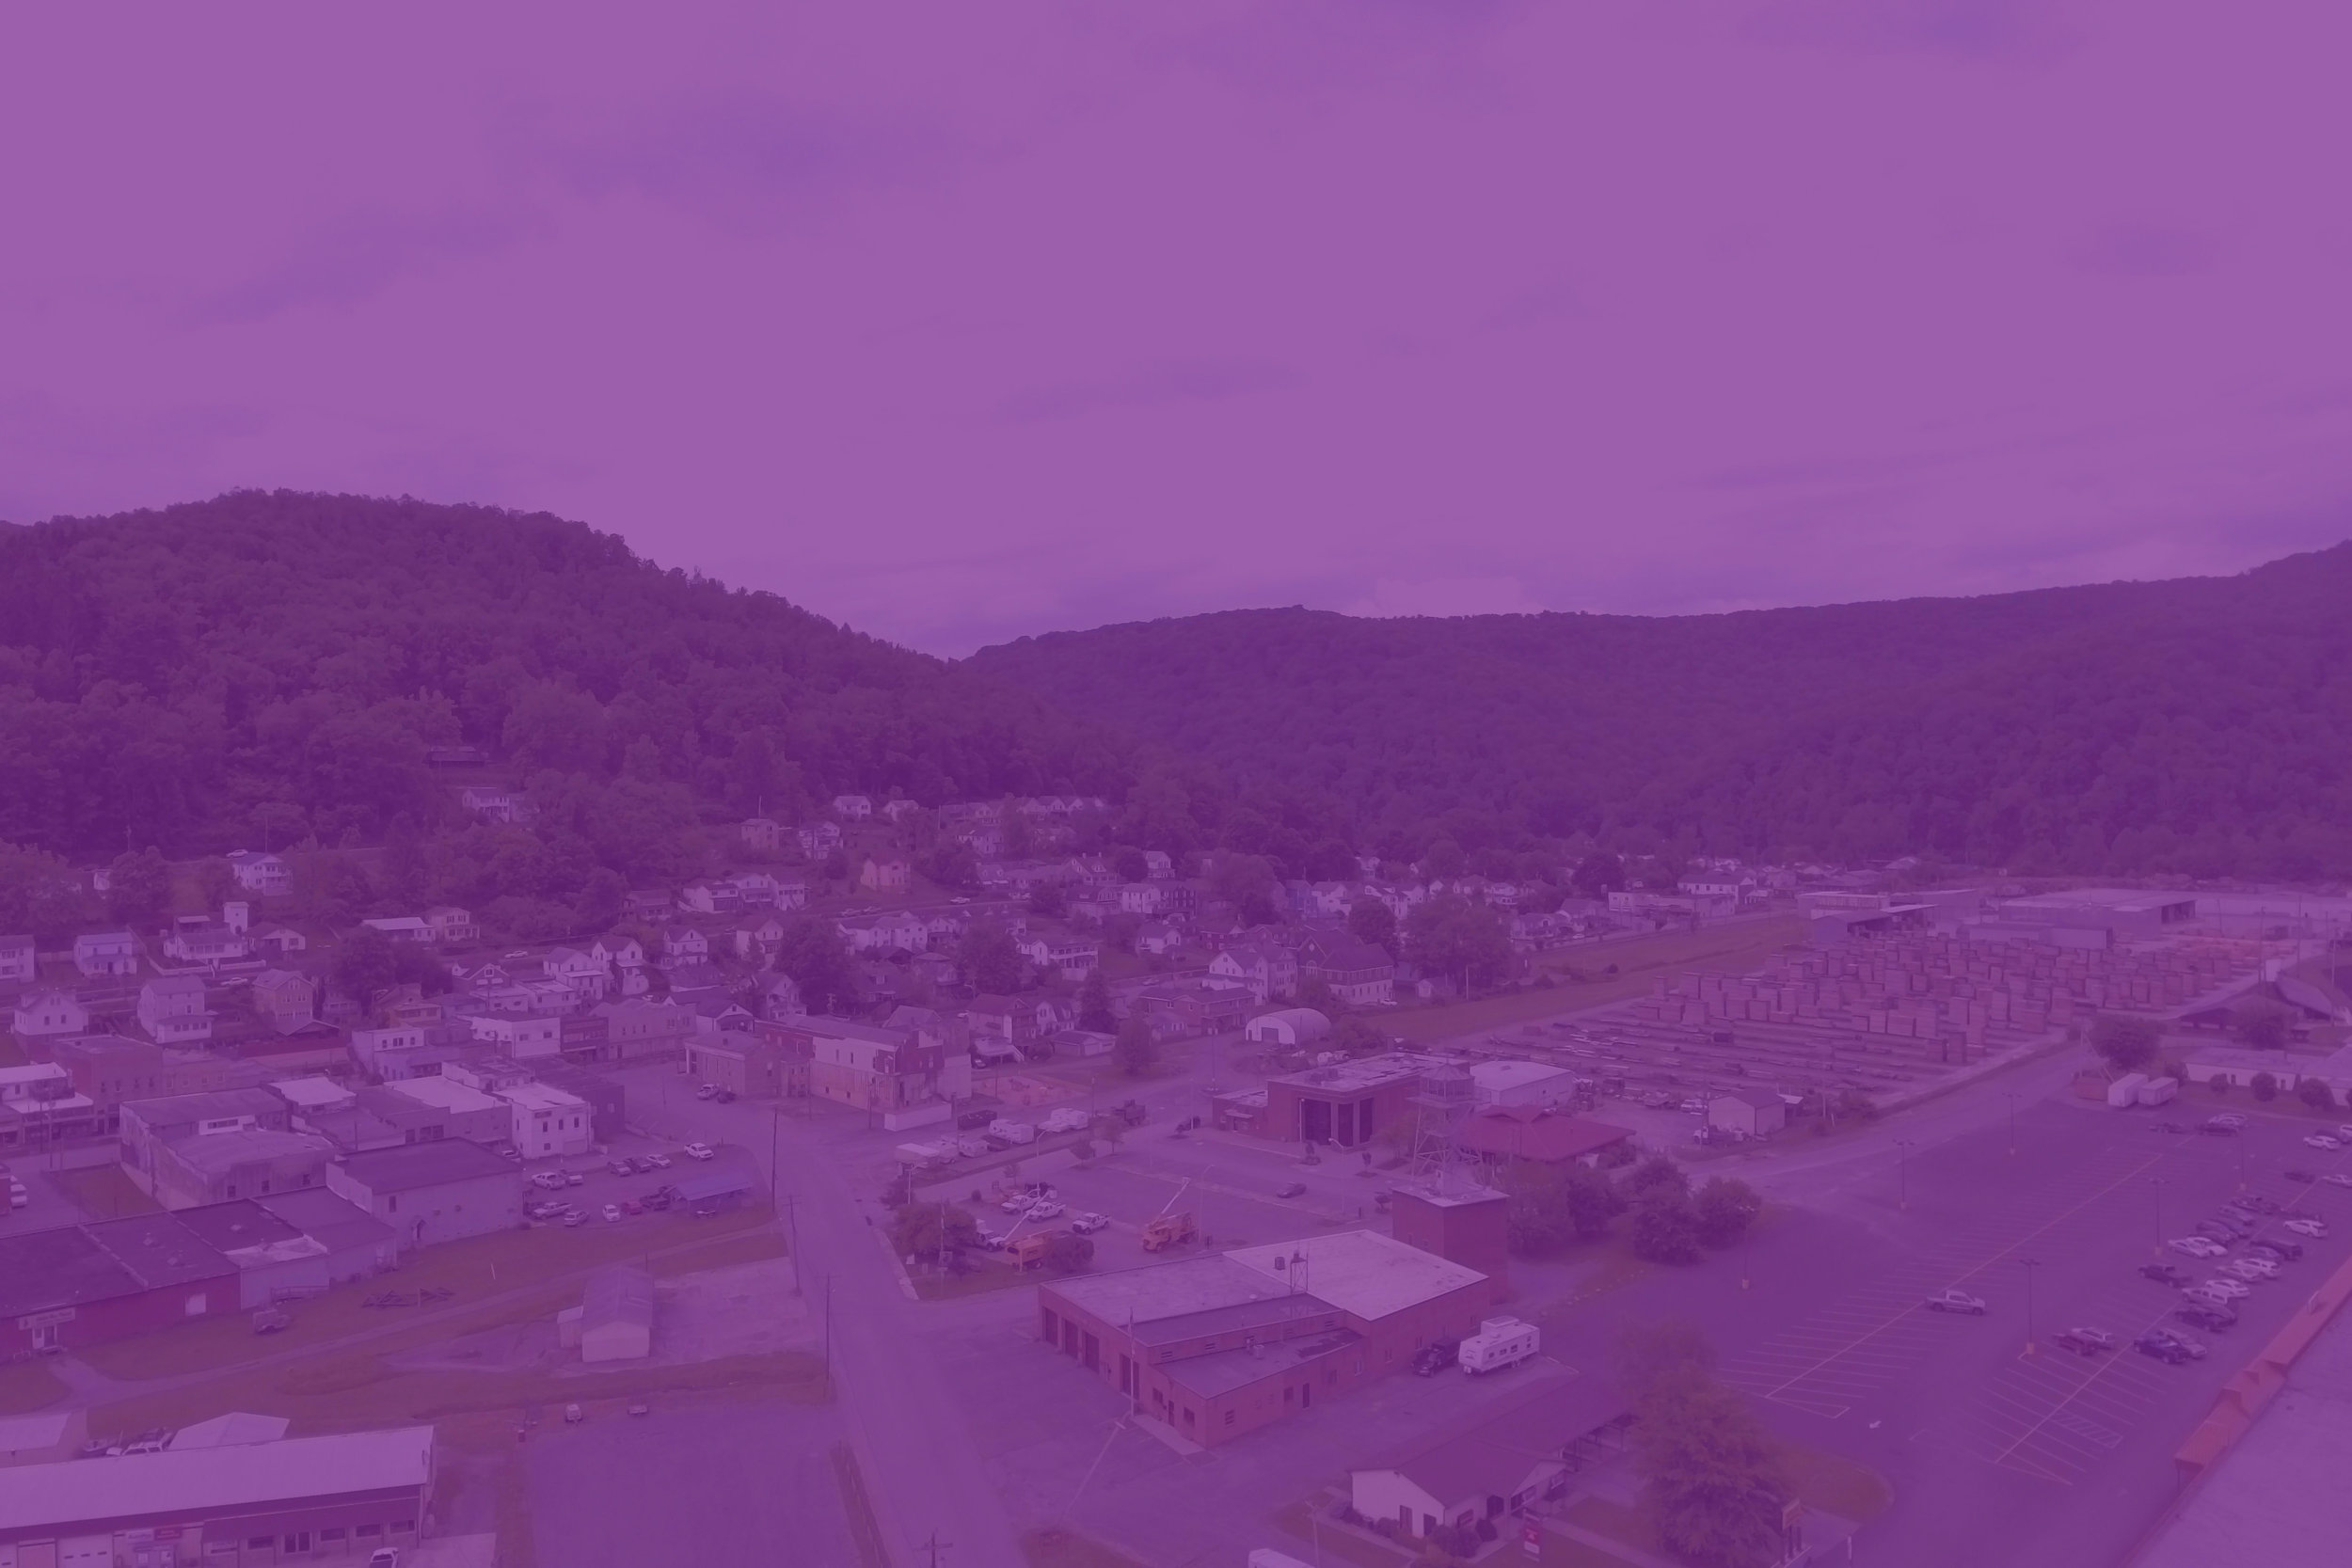 richwood, West virginia -